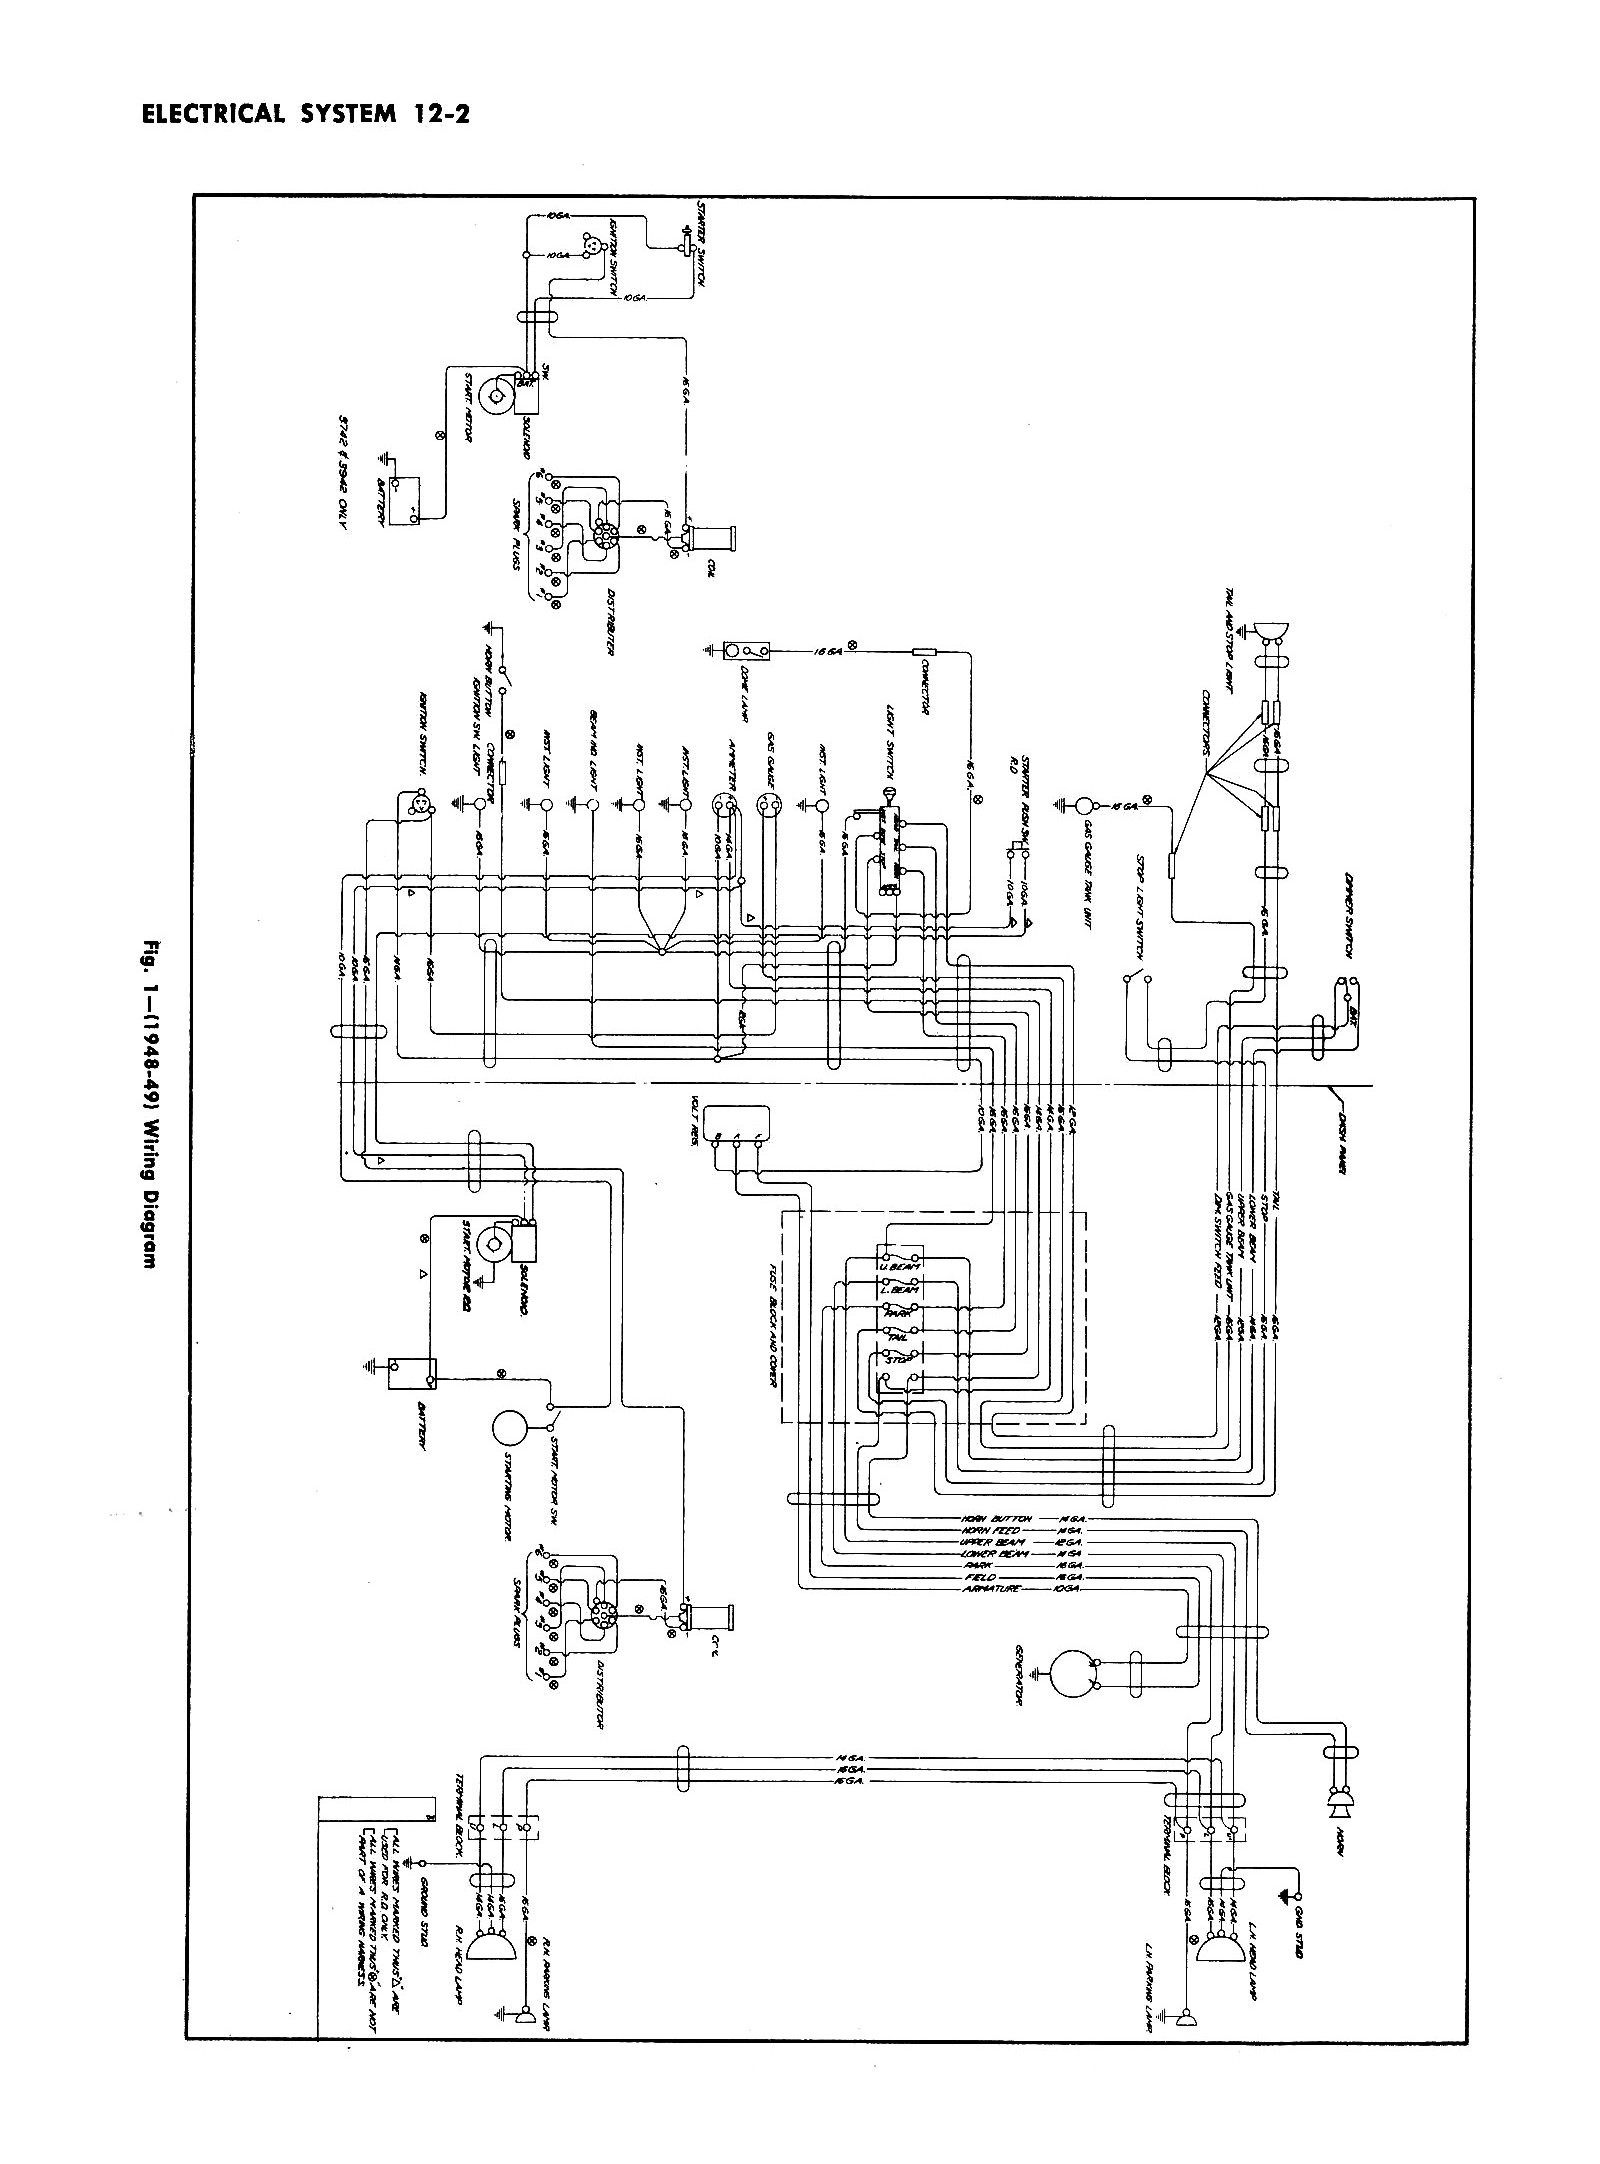 2004 Cadillac Cts Parts Diagram Trusted Wiring Diagrams Engine Chevy 2008 2013